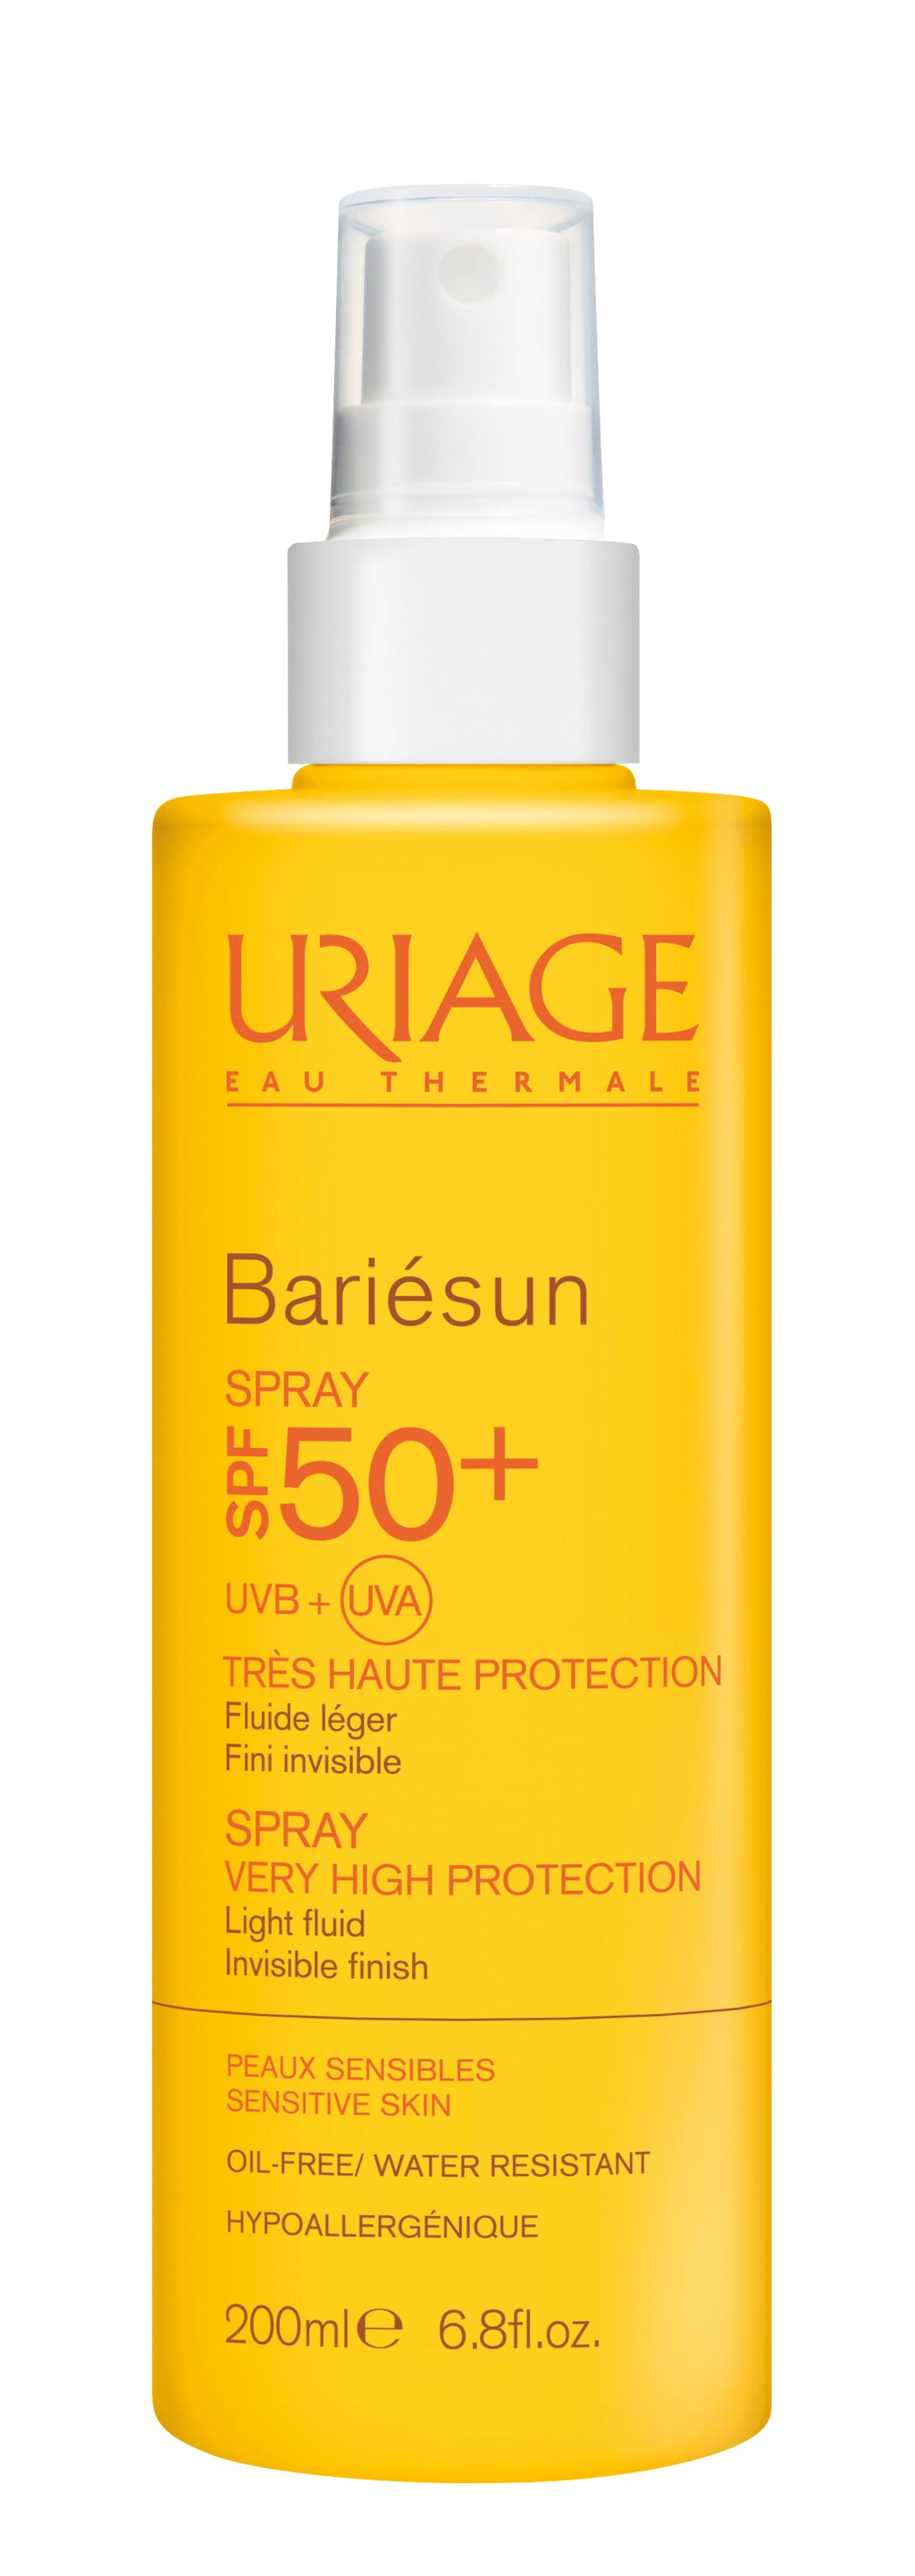 URIAGE Bariesun Very High Protection Sun Spray with SPF50+Cosmetics Online IE